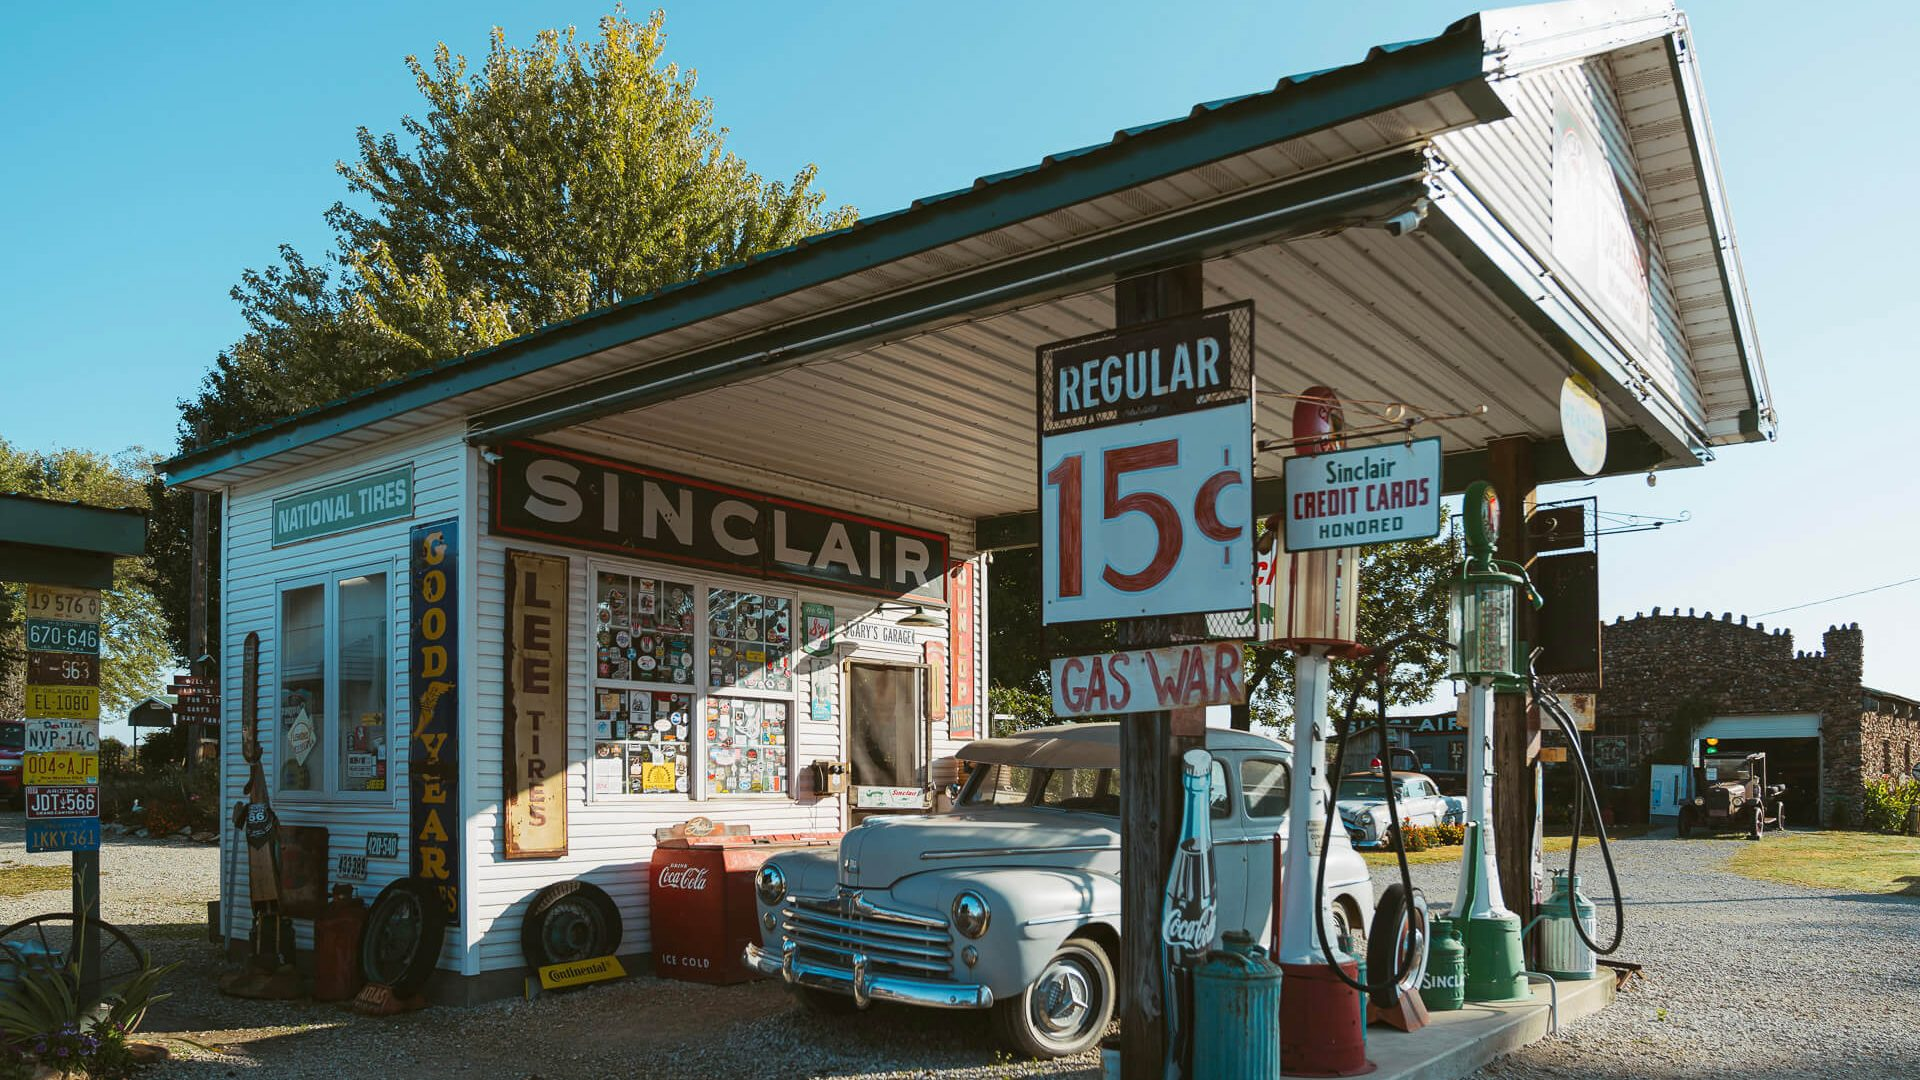 Gay Parita Sinclair Station is a replican Sinclair station on Route 66